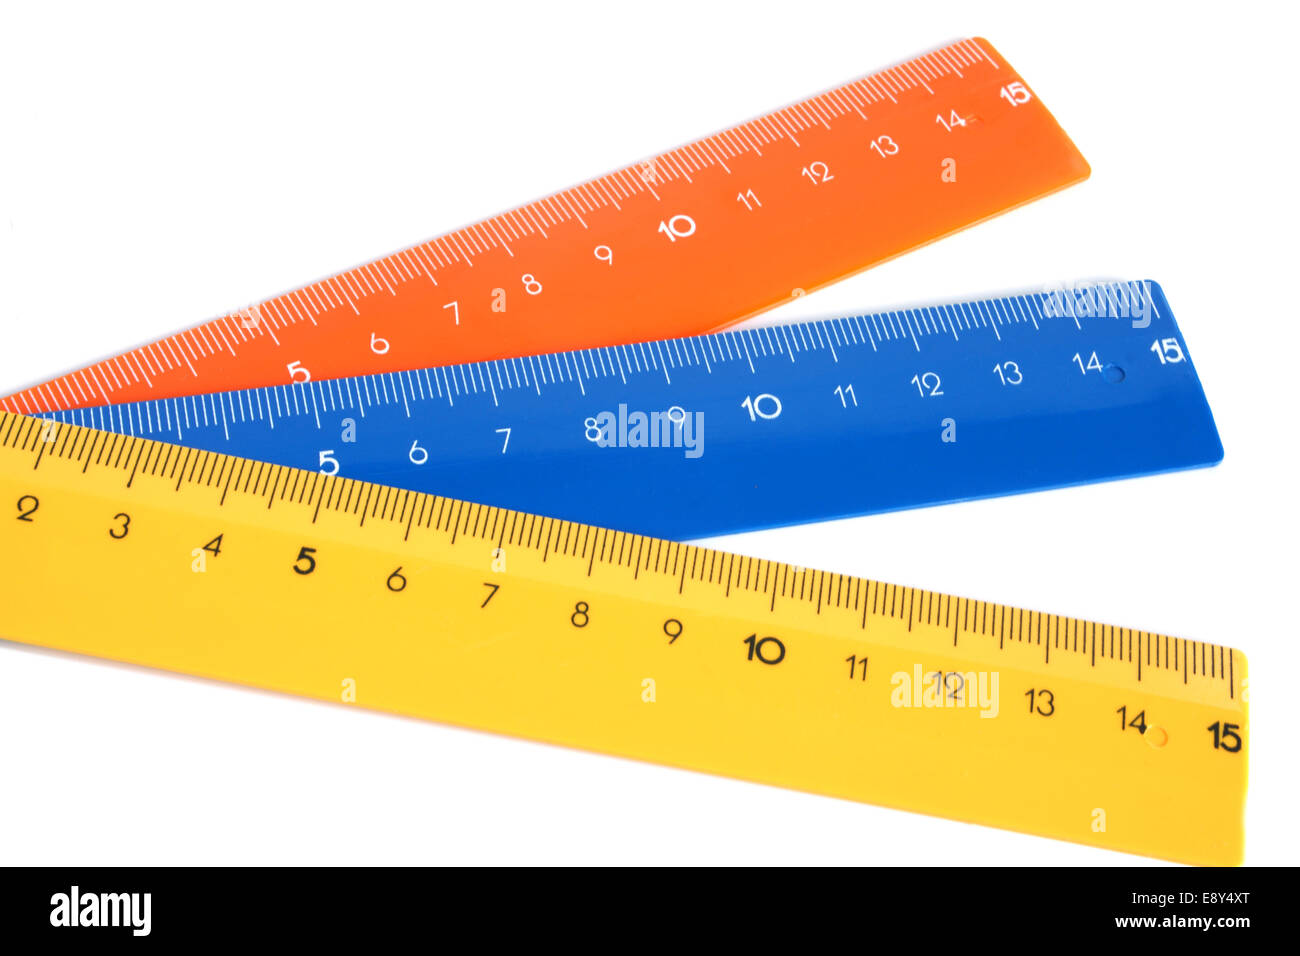 Rulers - Stock Image